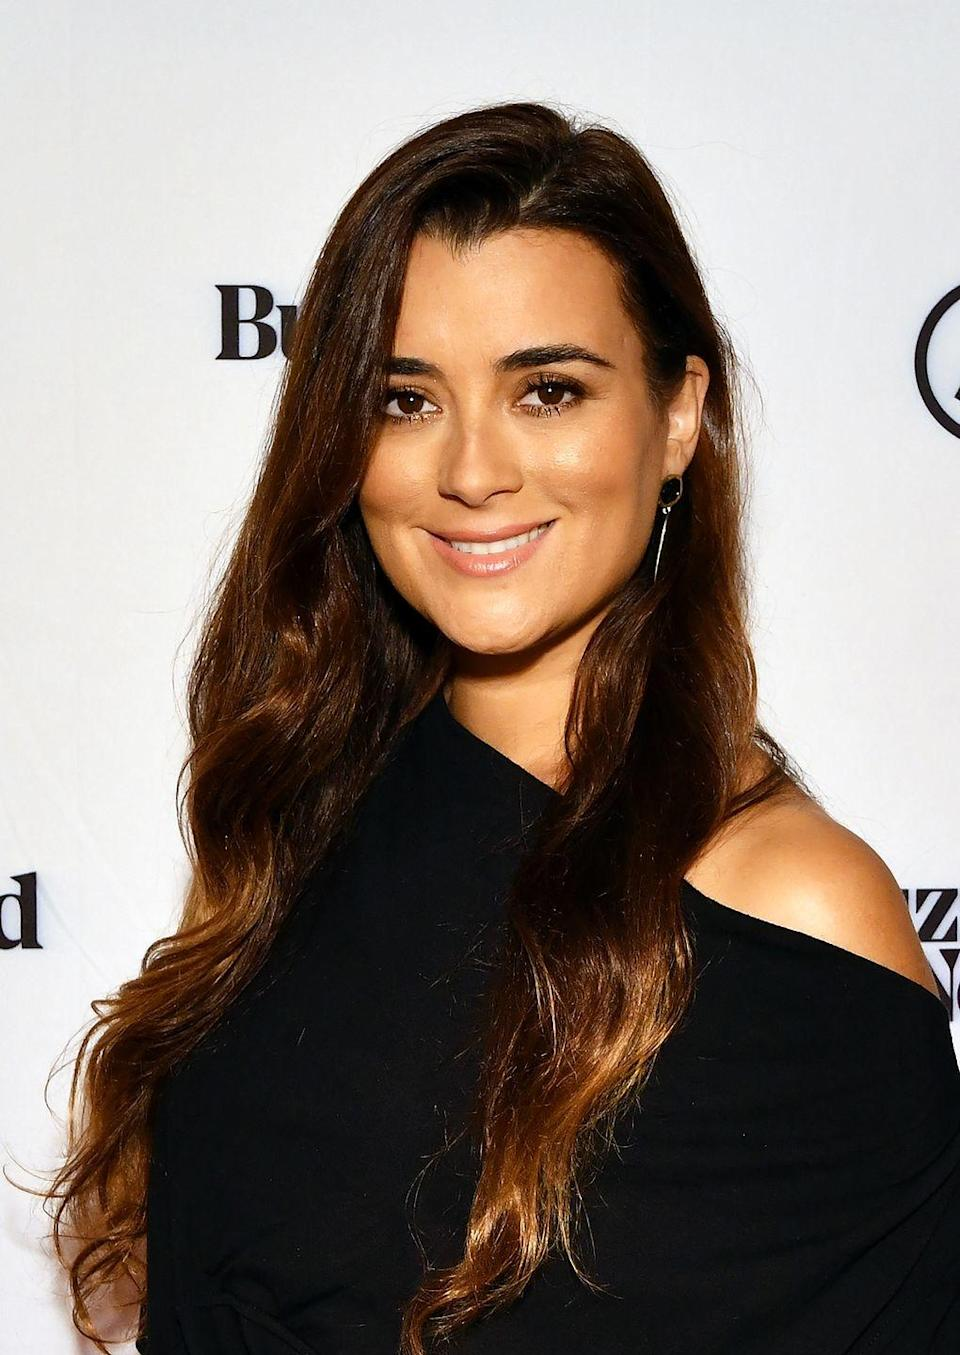 """<p><strong>María José de Pablo Fernández</strong>, who goes by """"Cote"""" professionally, was born in Santiago, Chile and <a href=""""https://www.biography.com/actor/cote-de-pablo"""" rel=""""nofollow noopener"""" target=""""_blank"""" data-ylk=""""slk:moved to Miami"""" class=""""link rapid-noclick-resp"""">moved to Miami</a> with her family when she was 10 years old. As she got older, she began studying and pursuing acting, eventually landing the role of Ziva David in <em>NCIS</em>. Before that, Cote got her big break when she scored a cohosting gig on the talk show <em>Control</em>. </p>"""